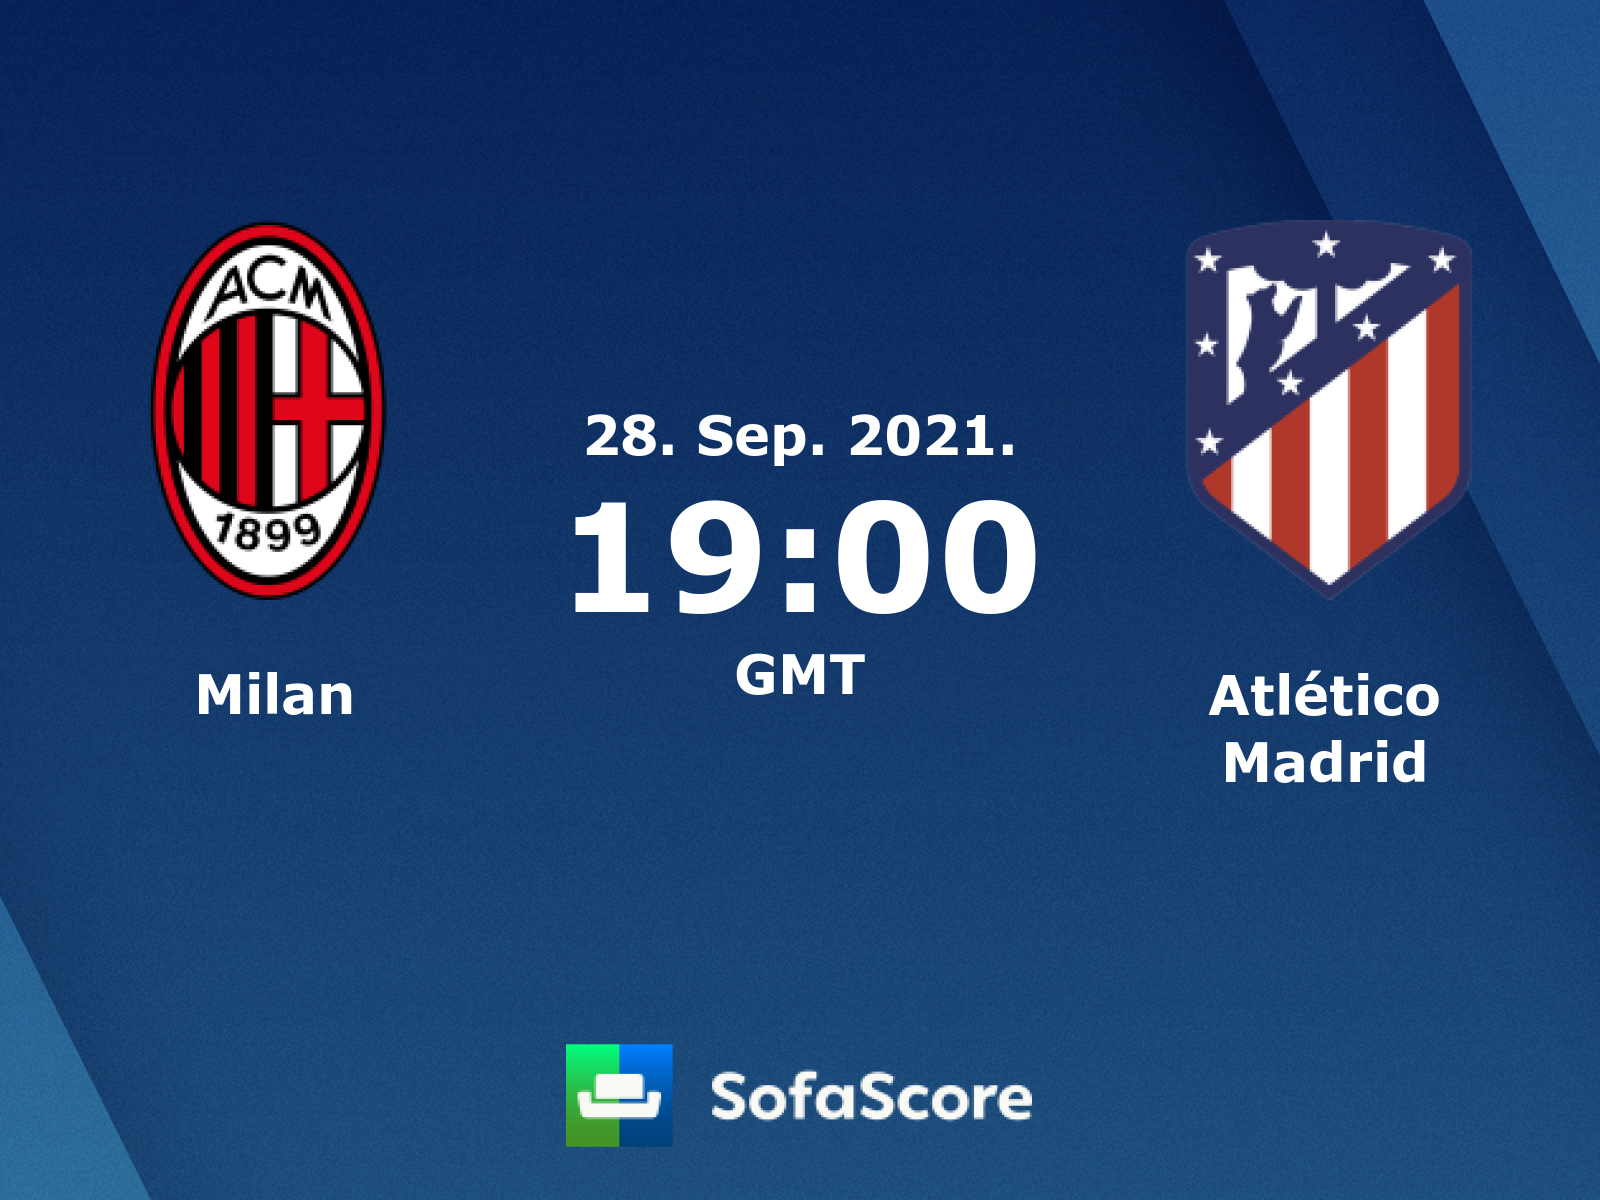 https://www.sofascore.com/images/share/4x3/atletico-madrid-milan-9757753.png